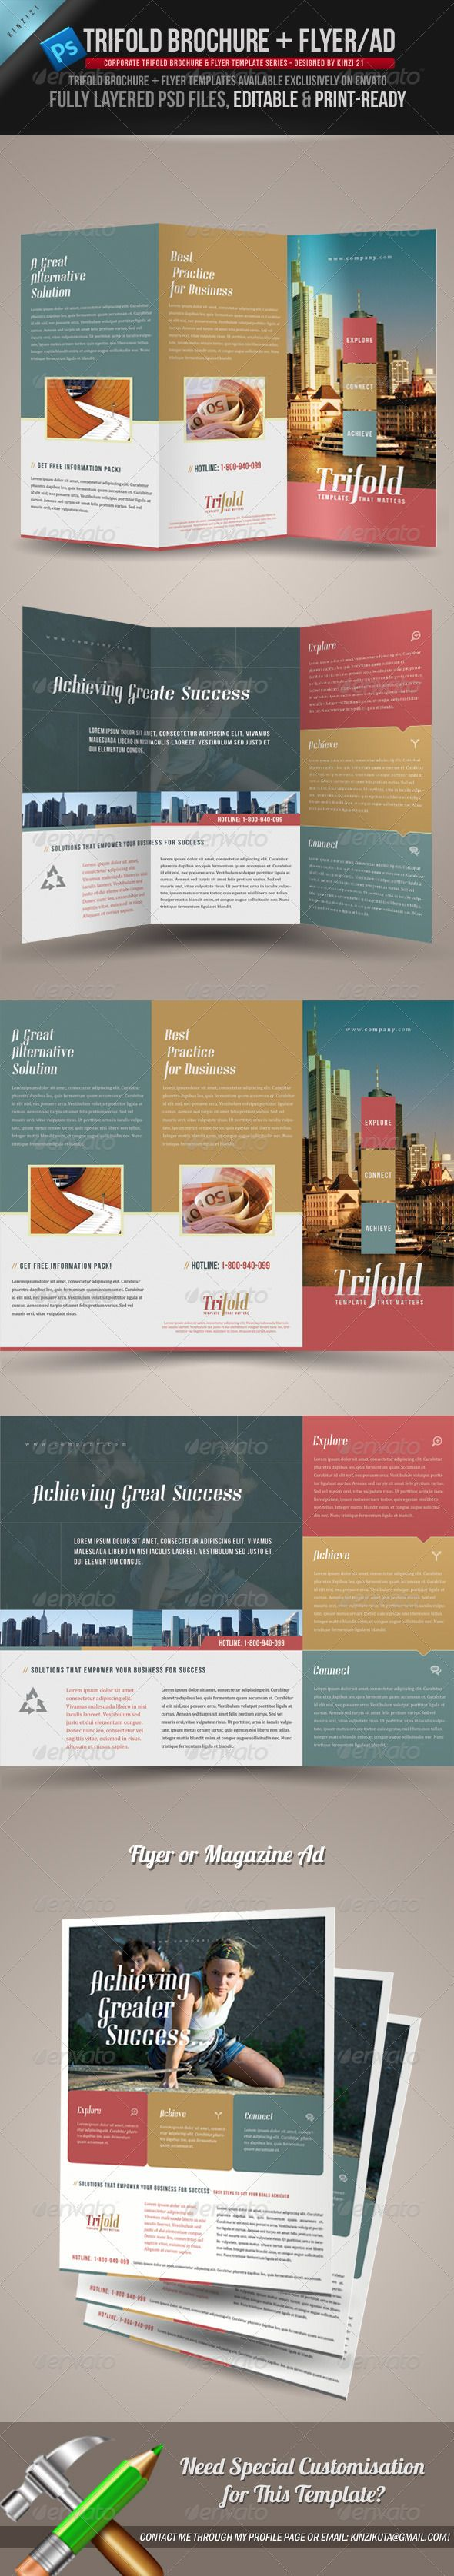 Trifold Brochure + Flyer / Ad Templates -  More info on how to get the template can be found here: http://graphicriver.net/item/trifold-brochure-flyer-ad-templates/823057?r=kinzi21